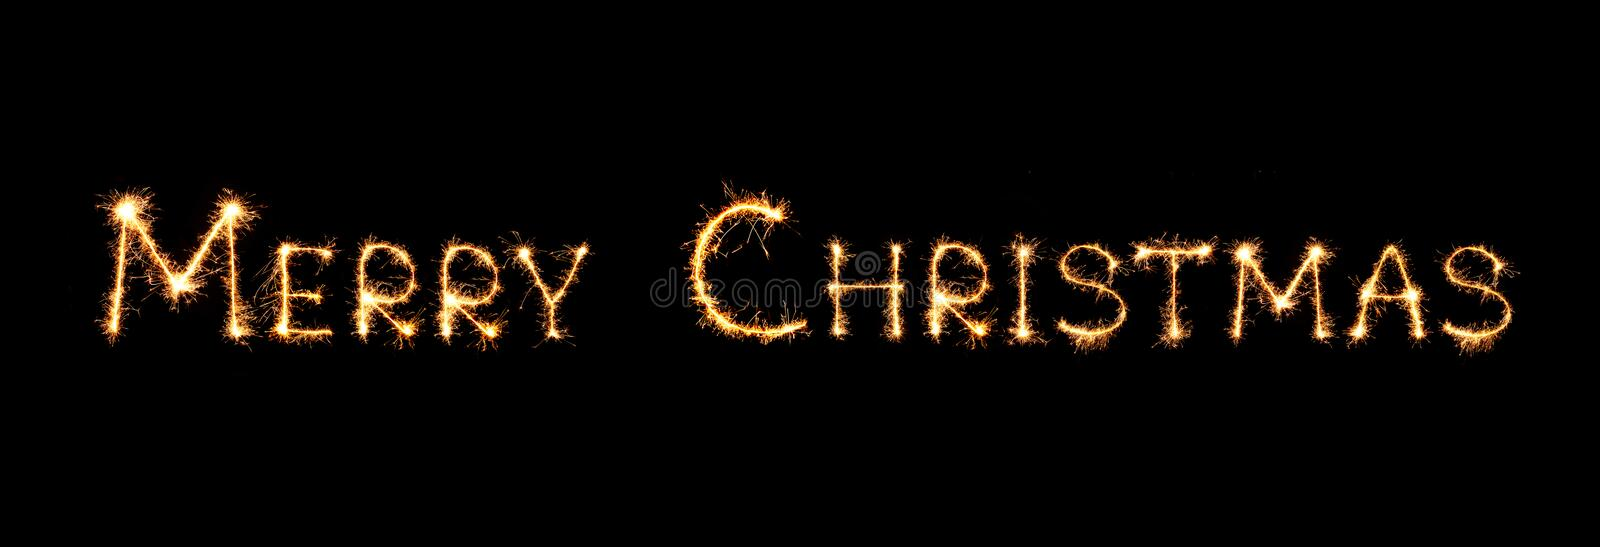 Merry Christmas text isolated on black background vector illustration